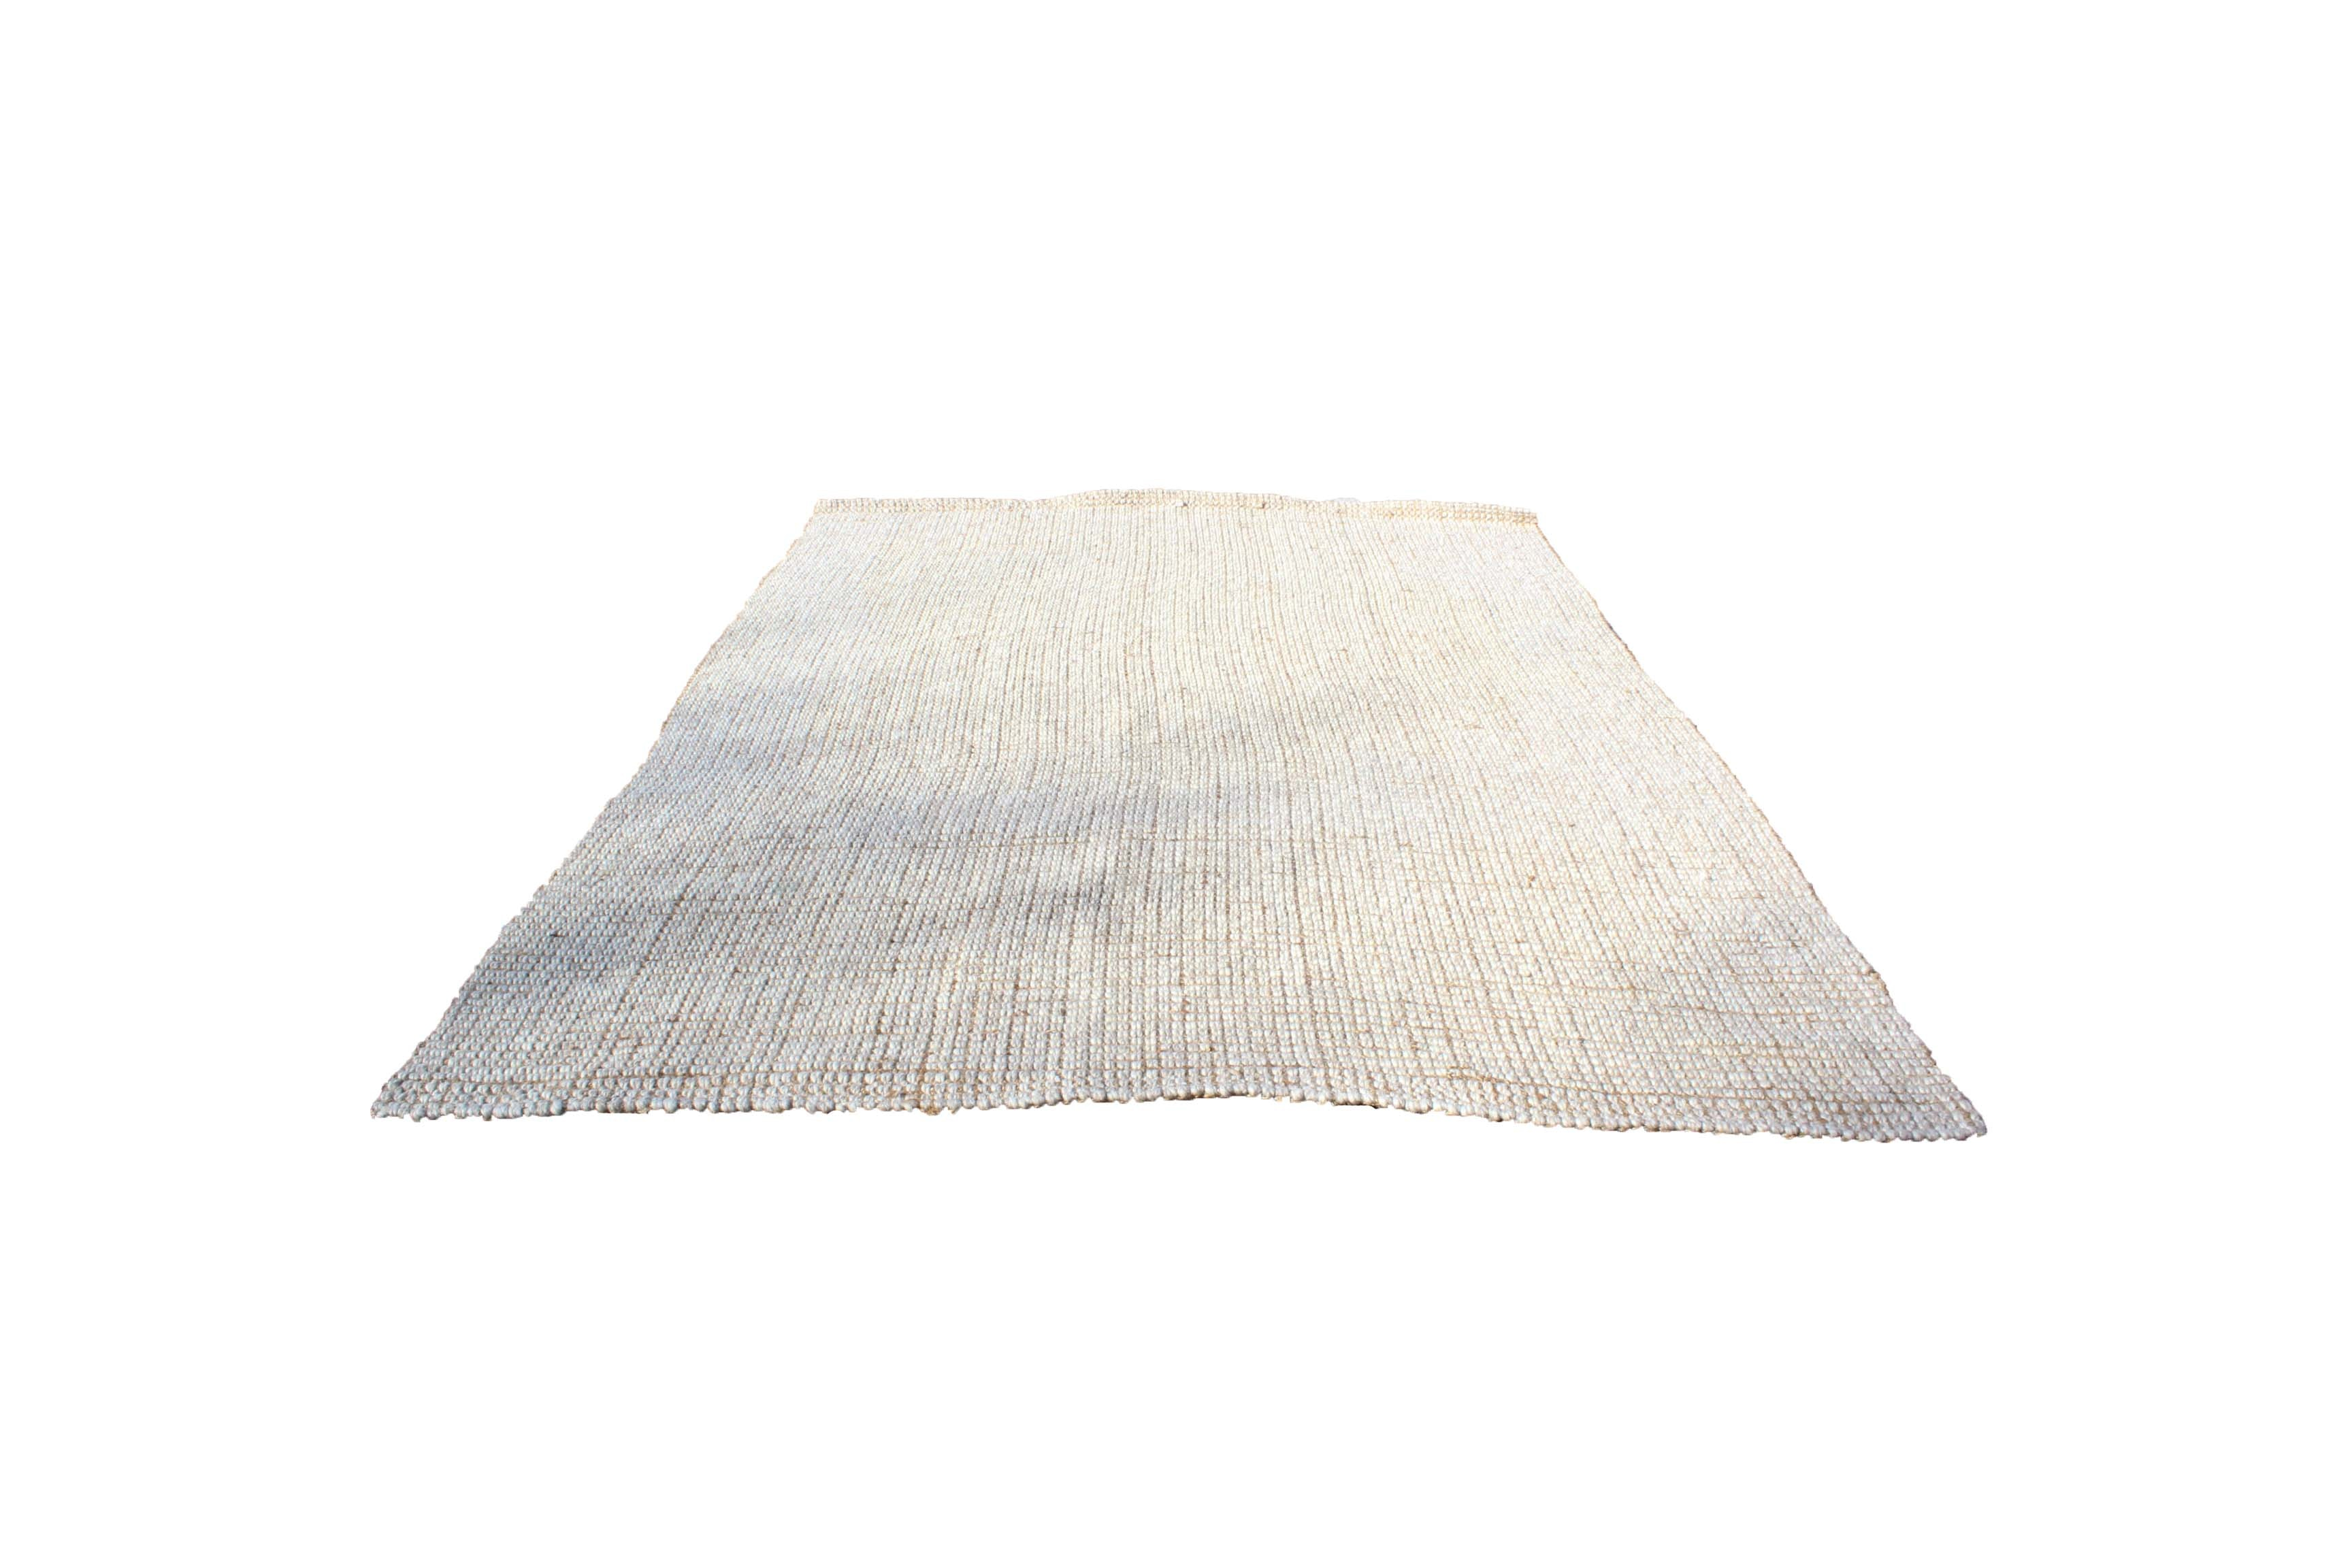 Woven Pottery Barn Wool and Jute Area Rug